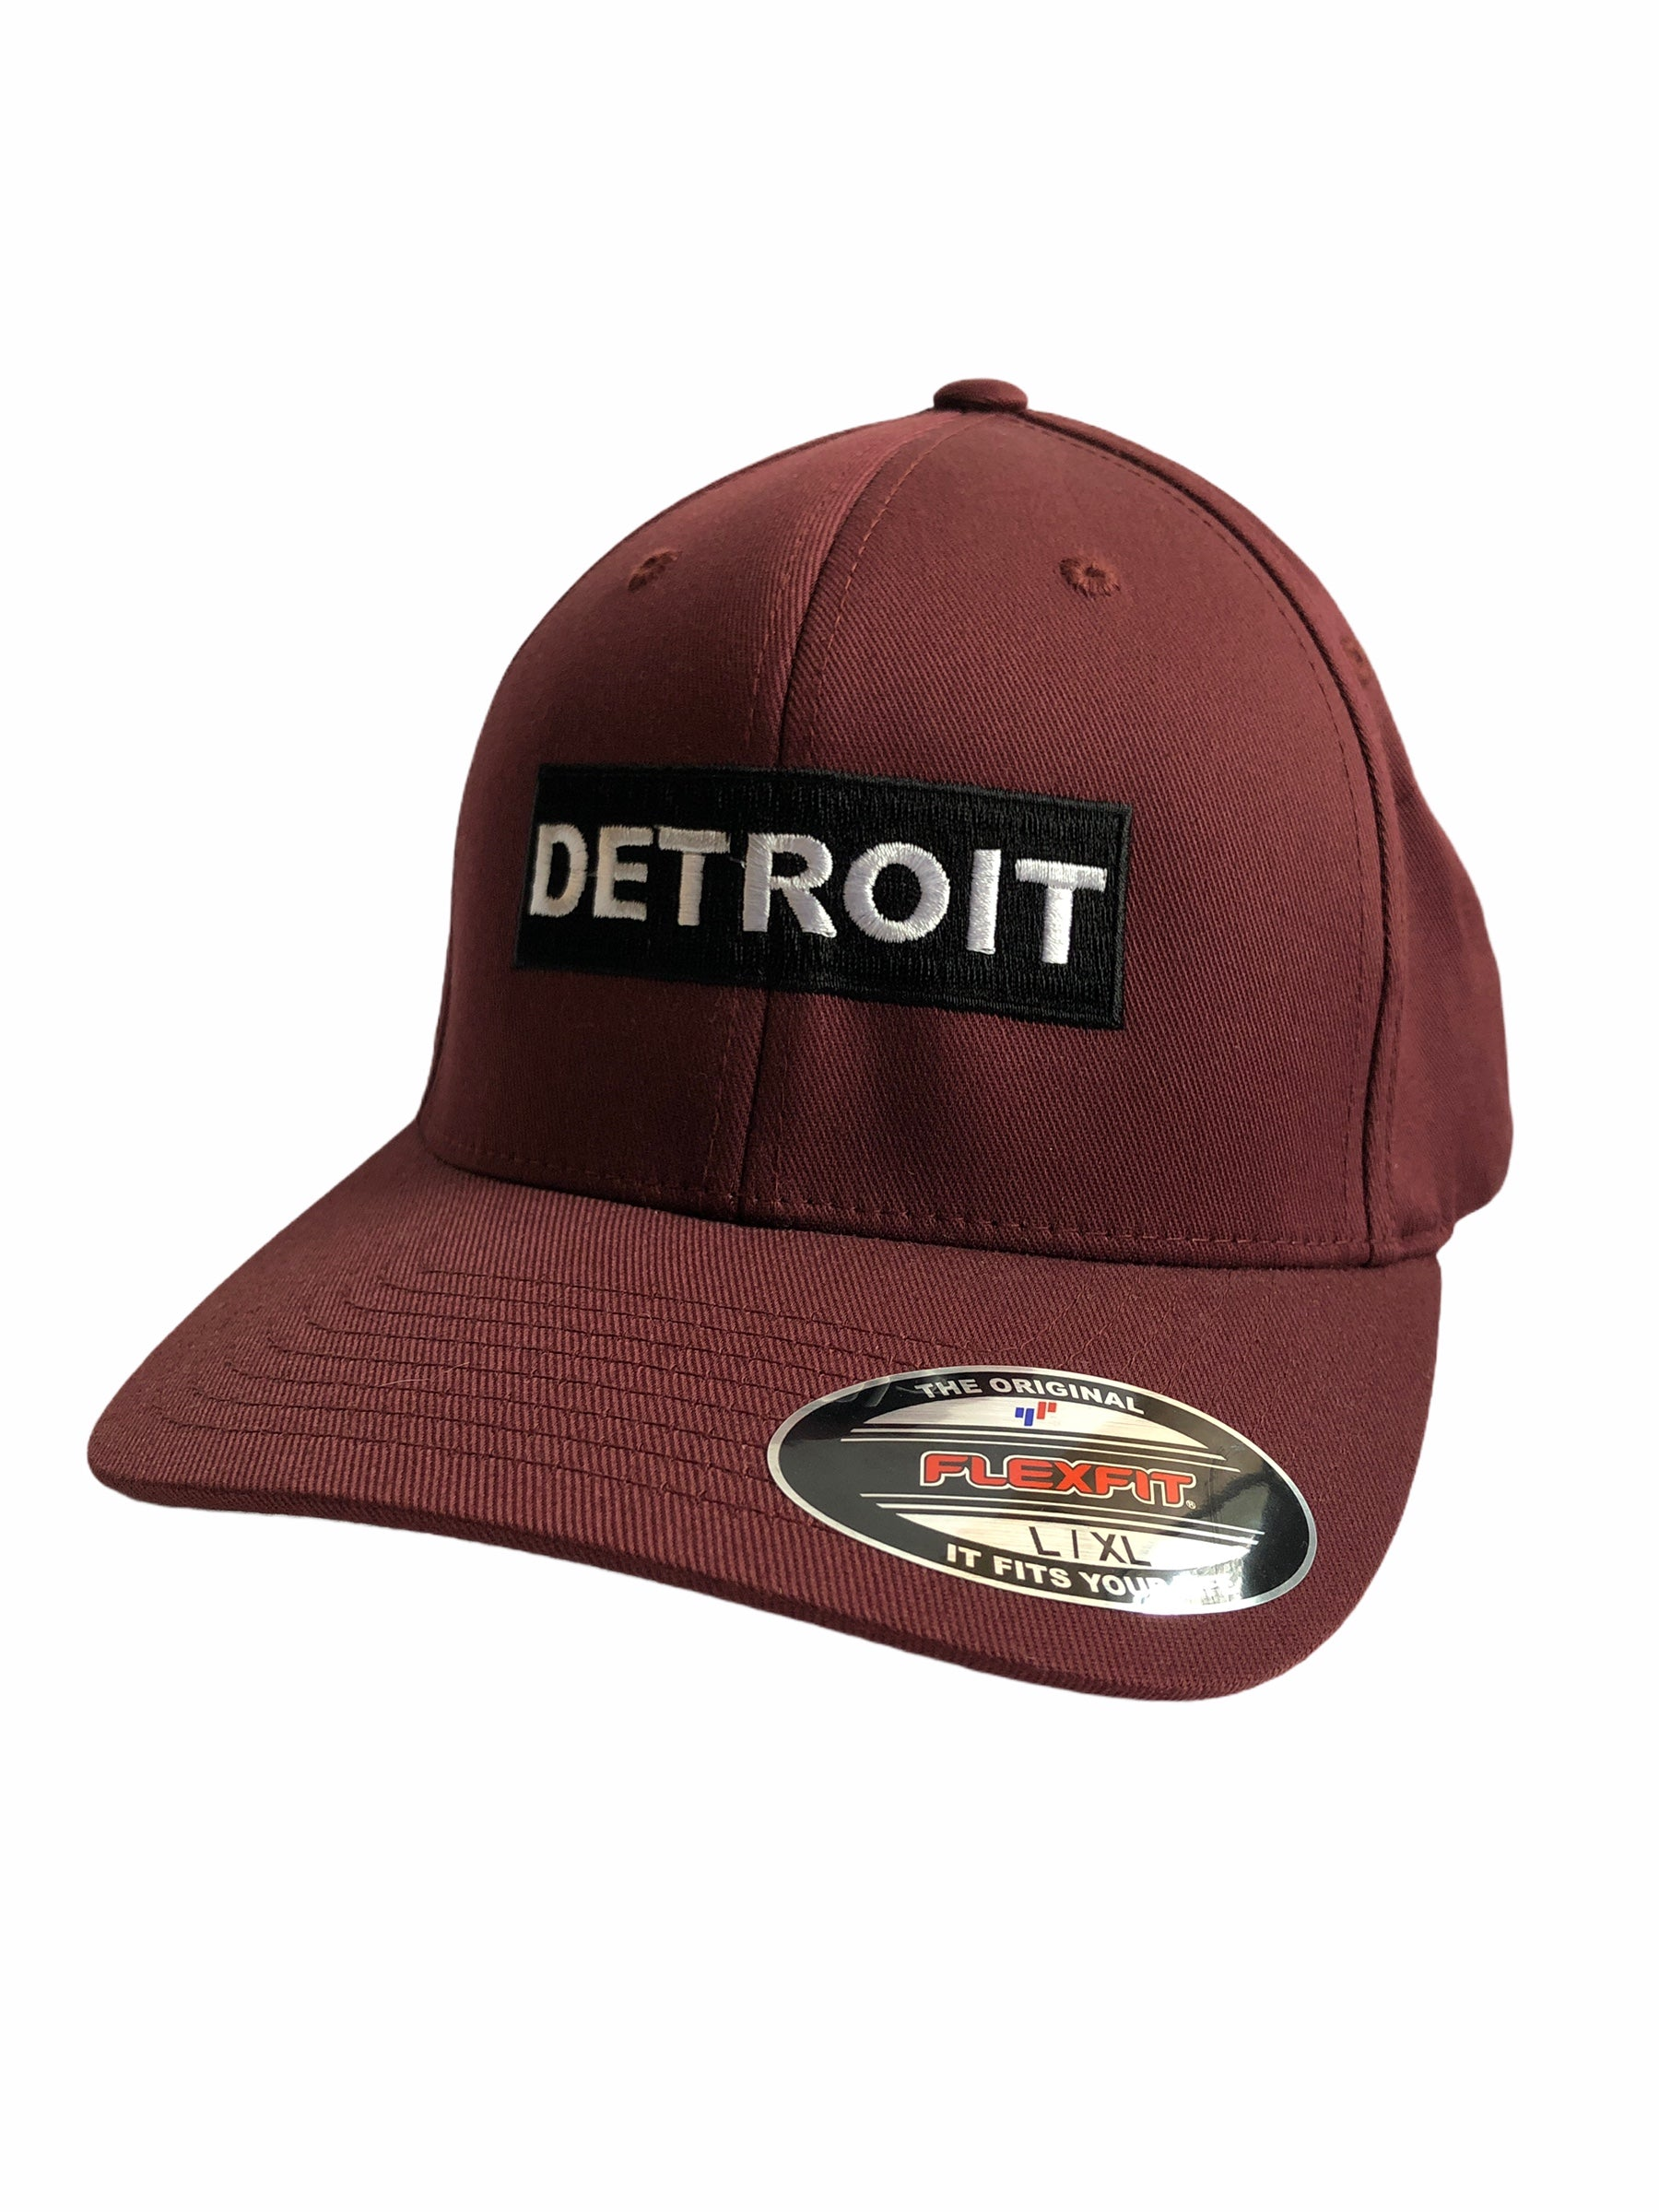 Detroit Premium Flexfit Fitted Hat / Maroon - Pure Detroit